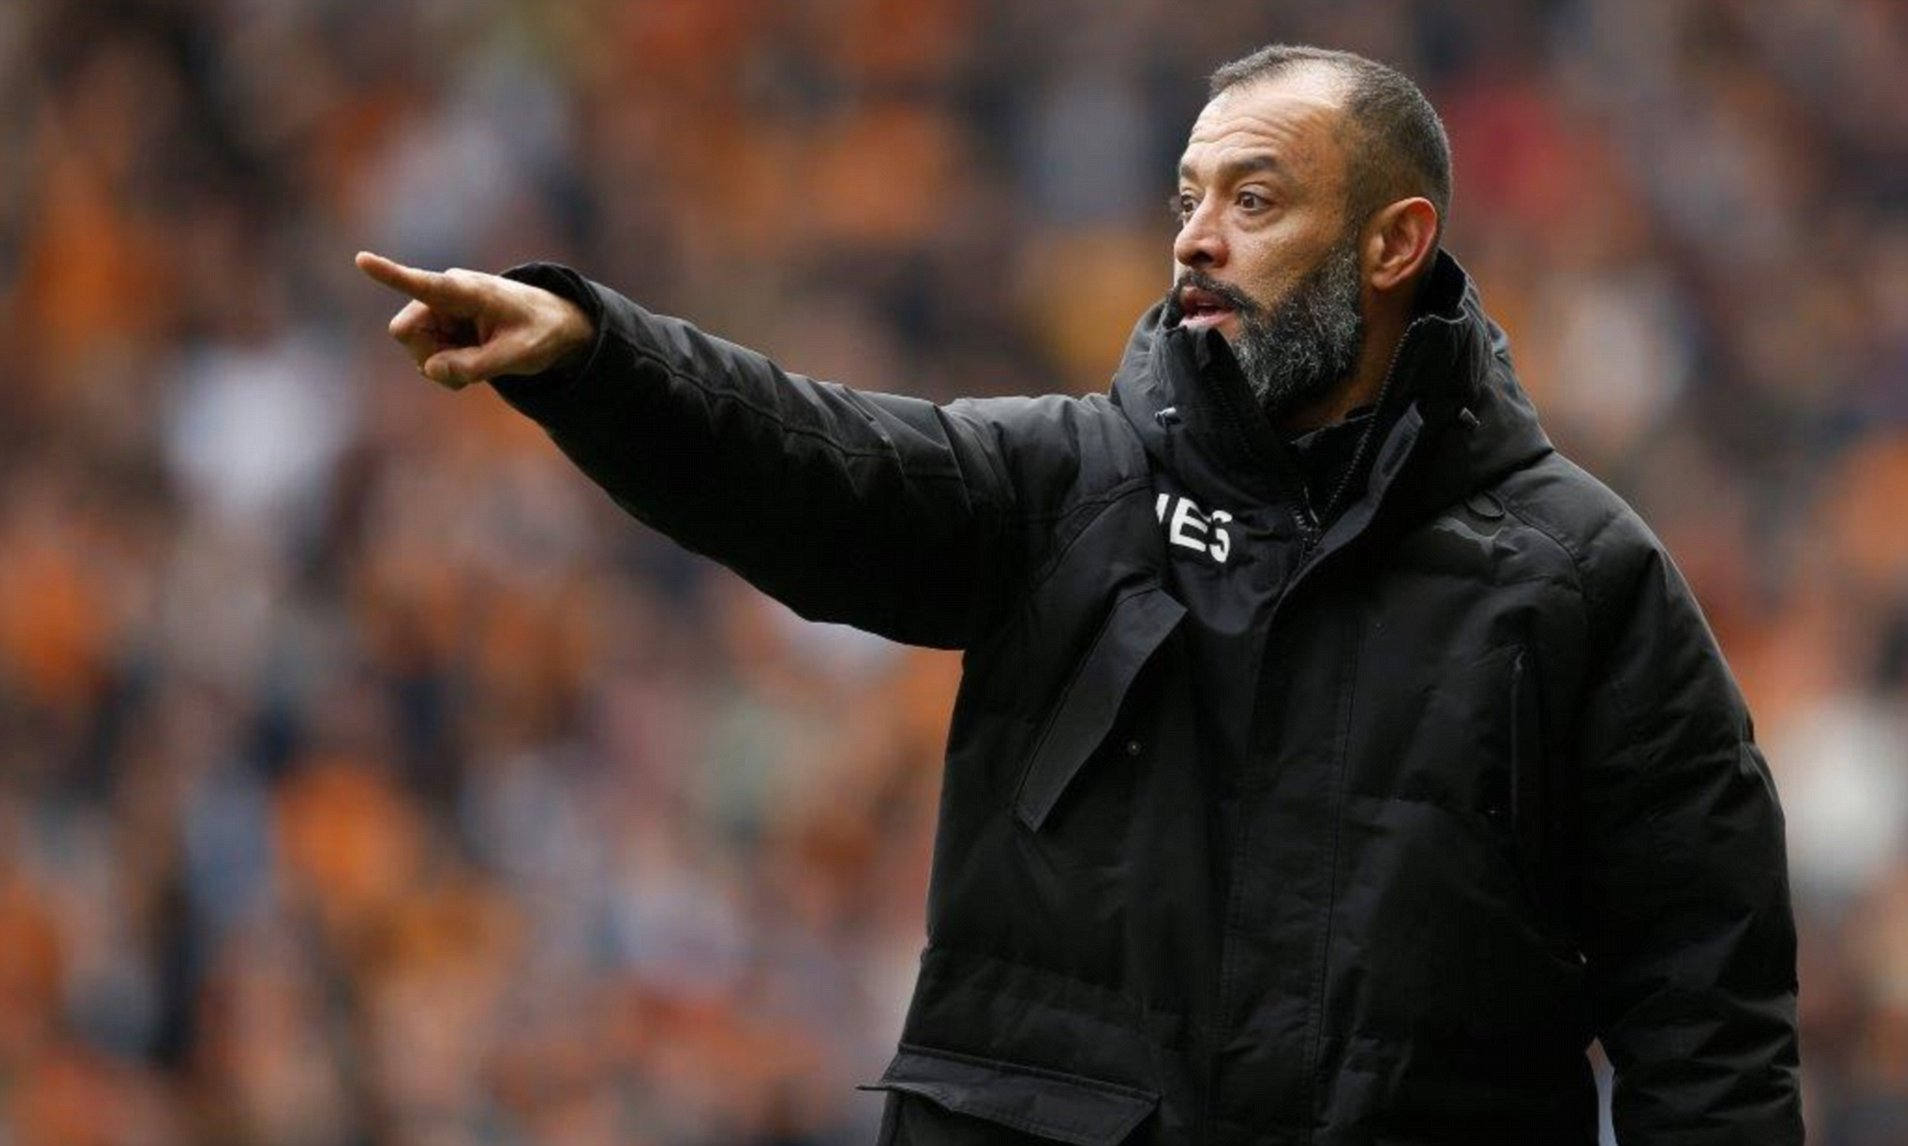 Nuno Espirito Santo signs new three-year deal as Wolves manager   Daily  Mail Online